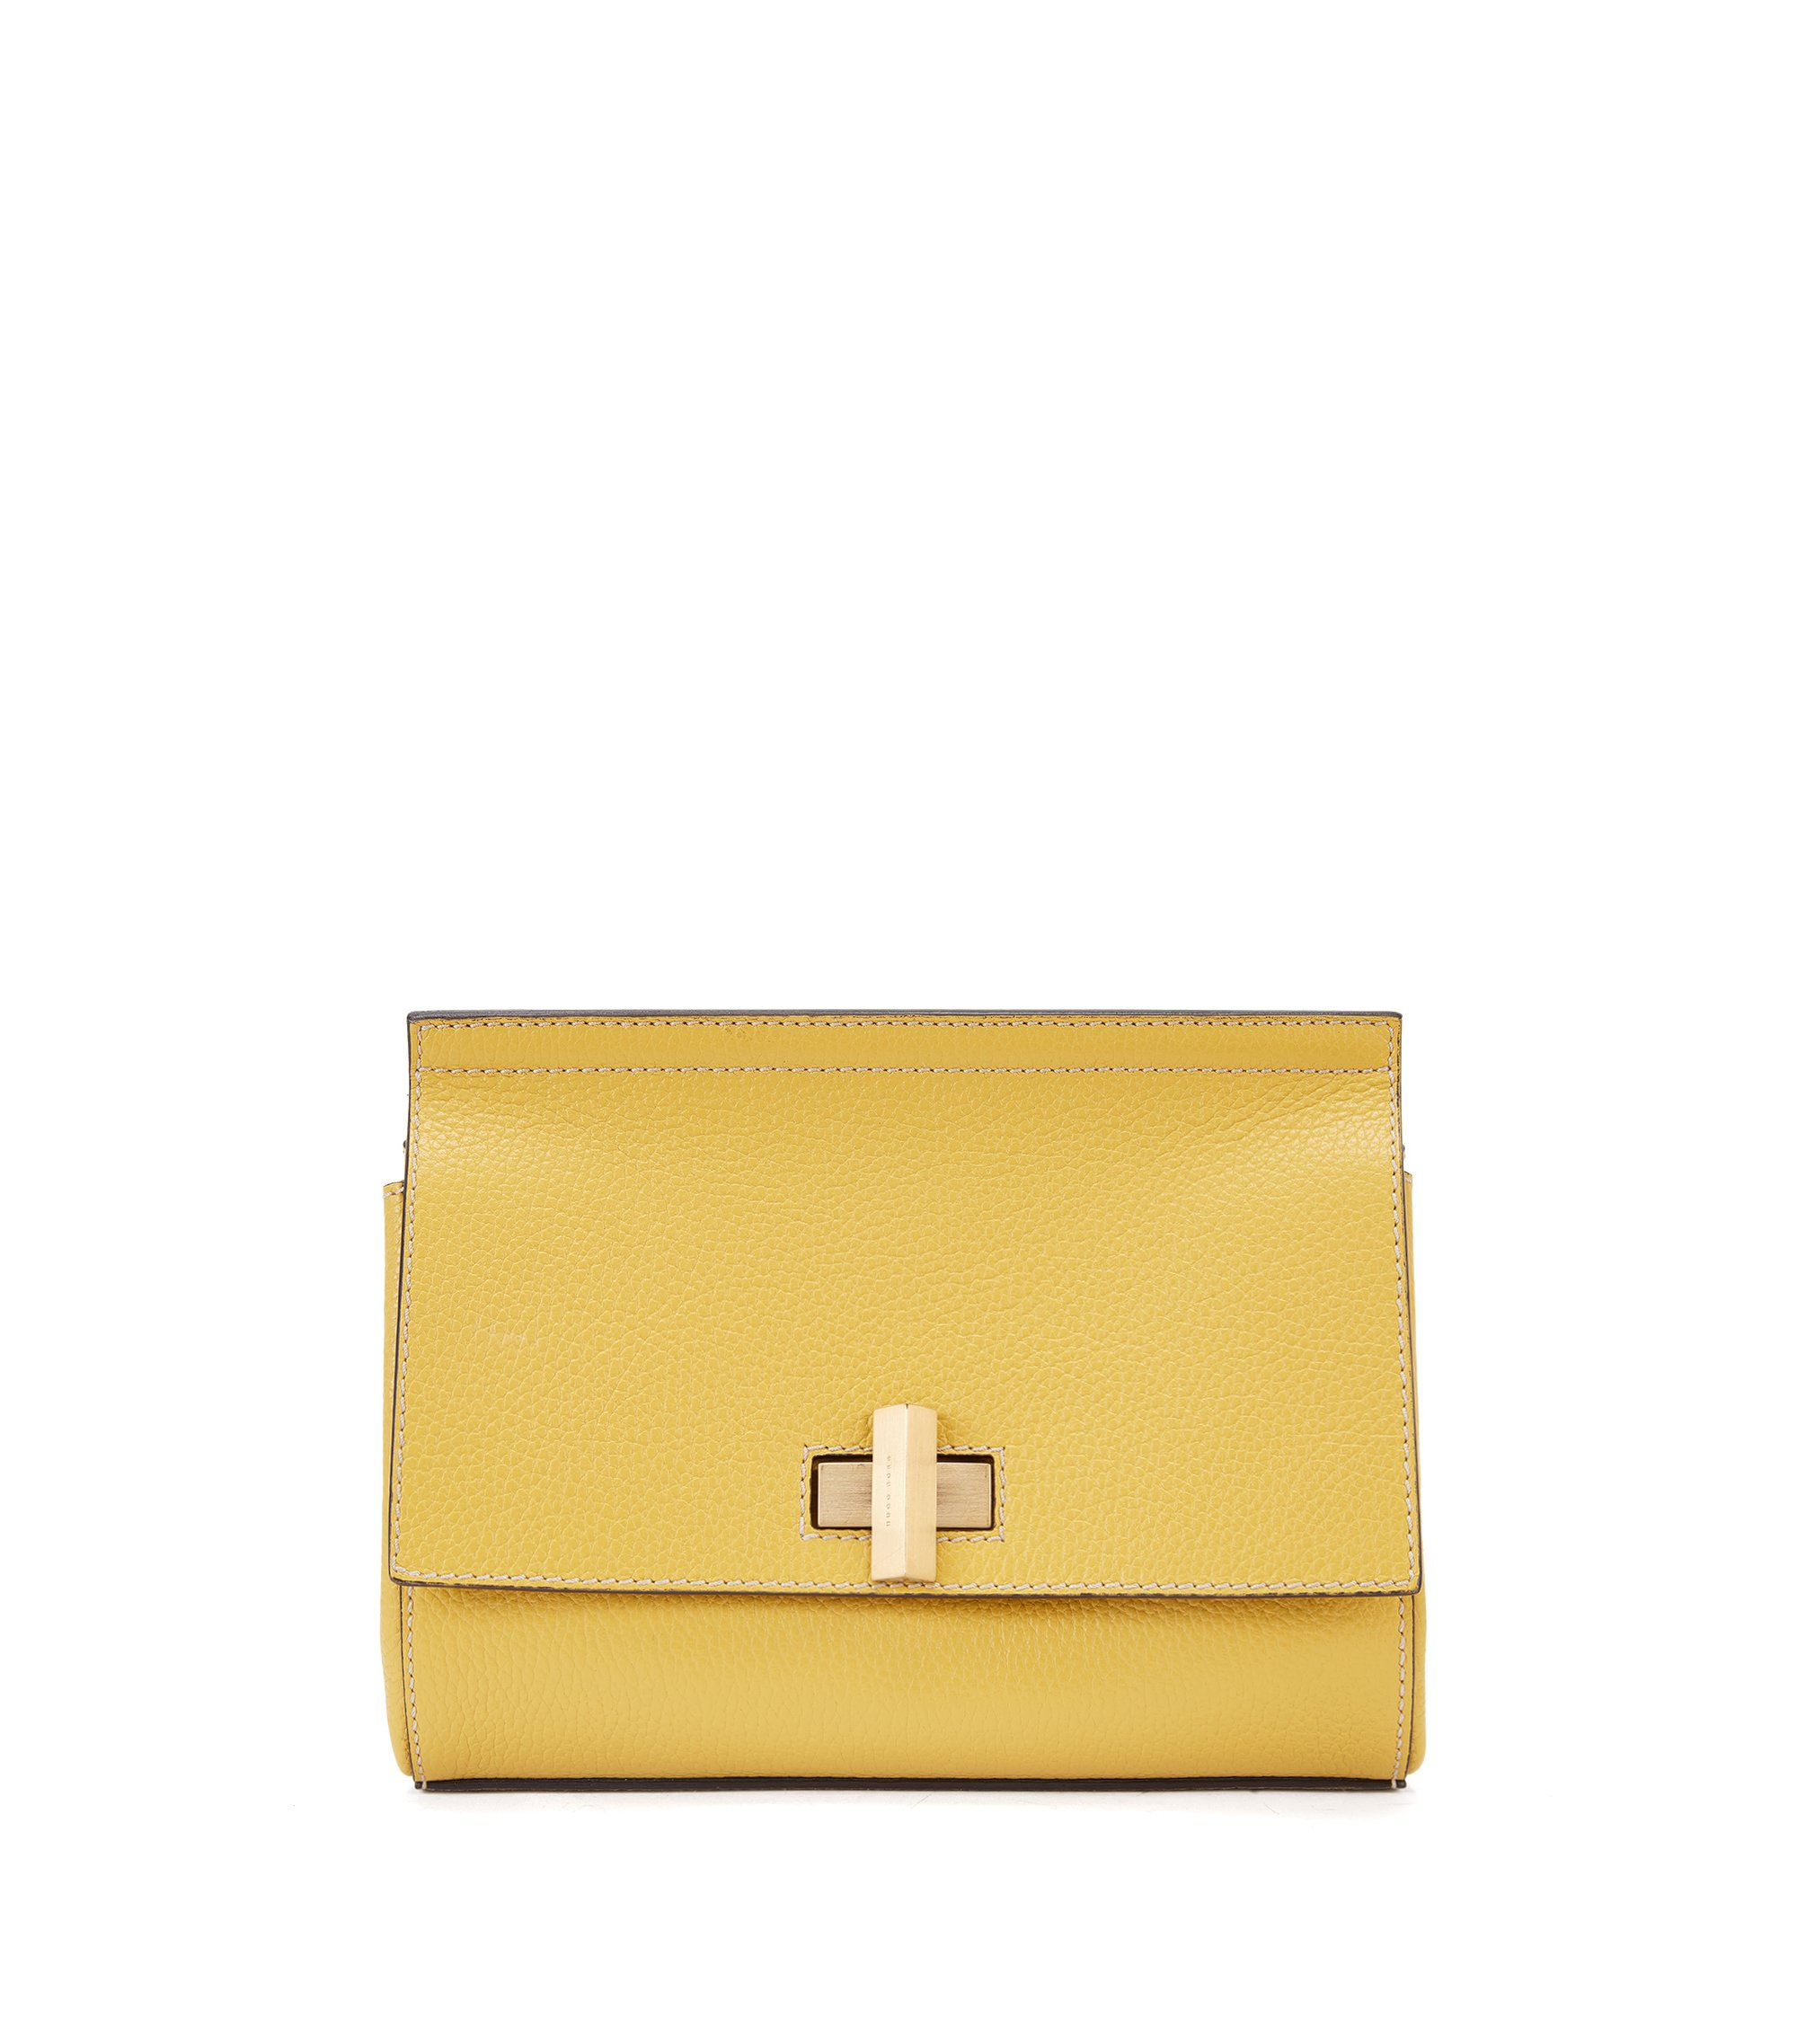 Small BOSS Bespoke Soft bag in grainy leather, Yellow